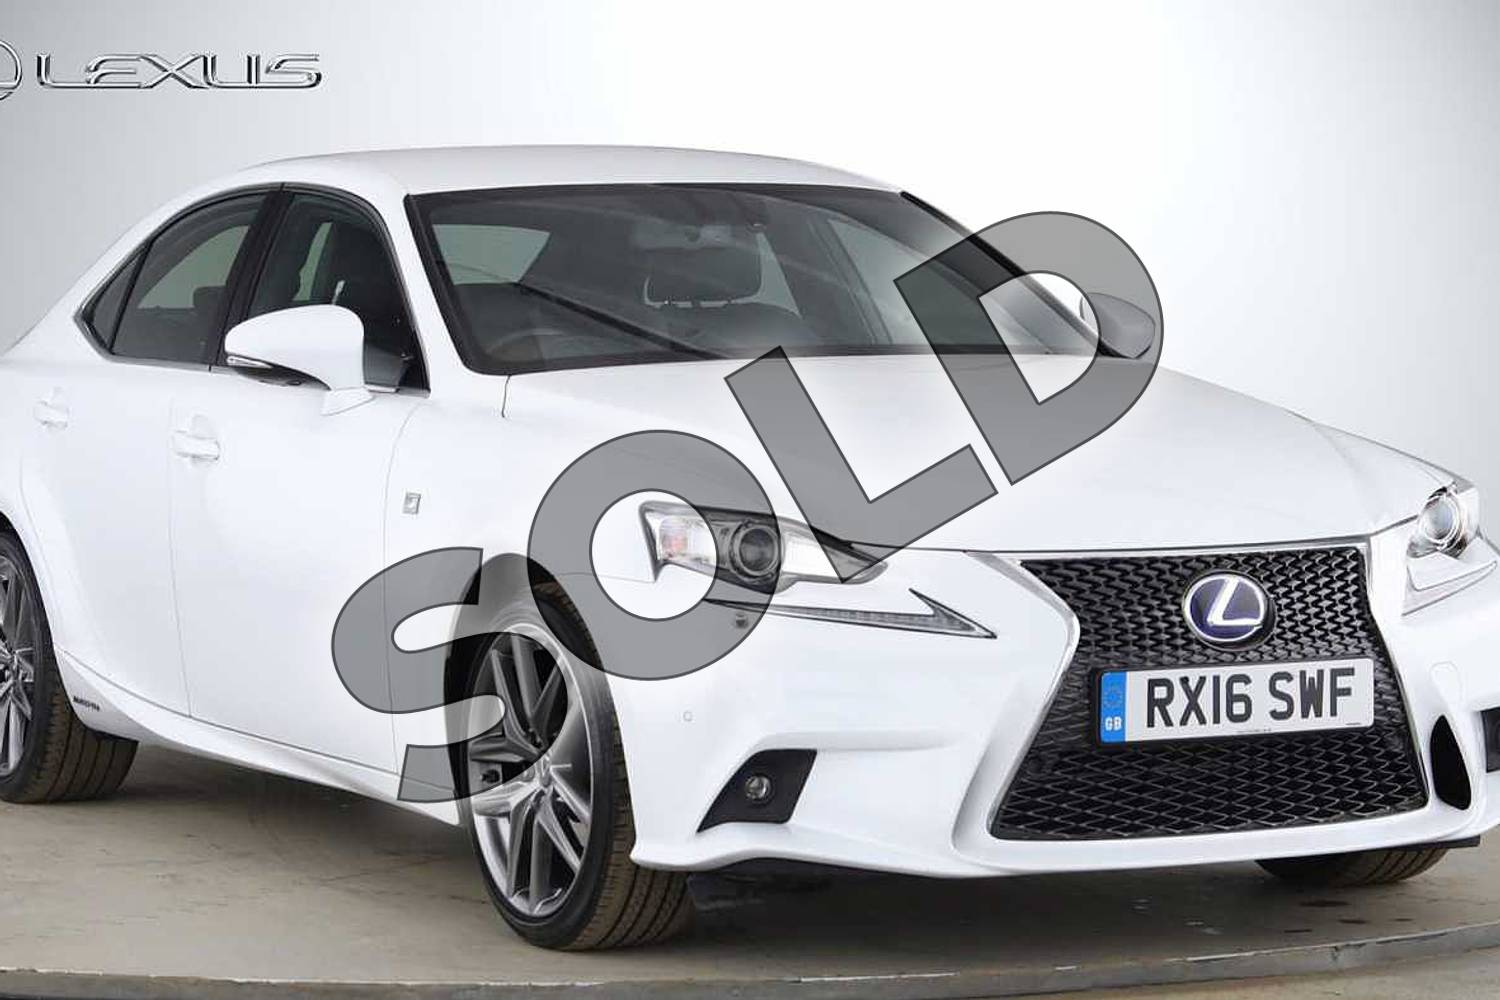 2016 Lexus IS Saloon 300h F-Sport 4dr CVT Auto in F Sport White at Lexus Cheltenham